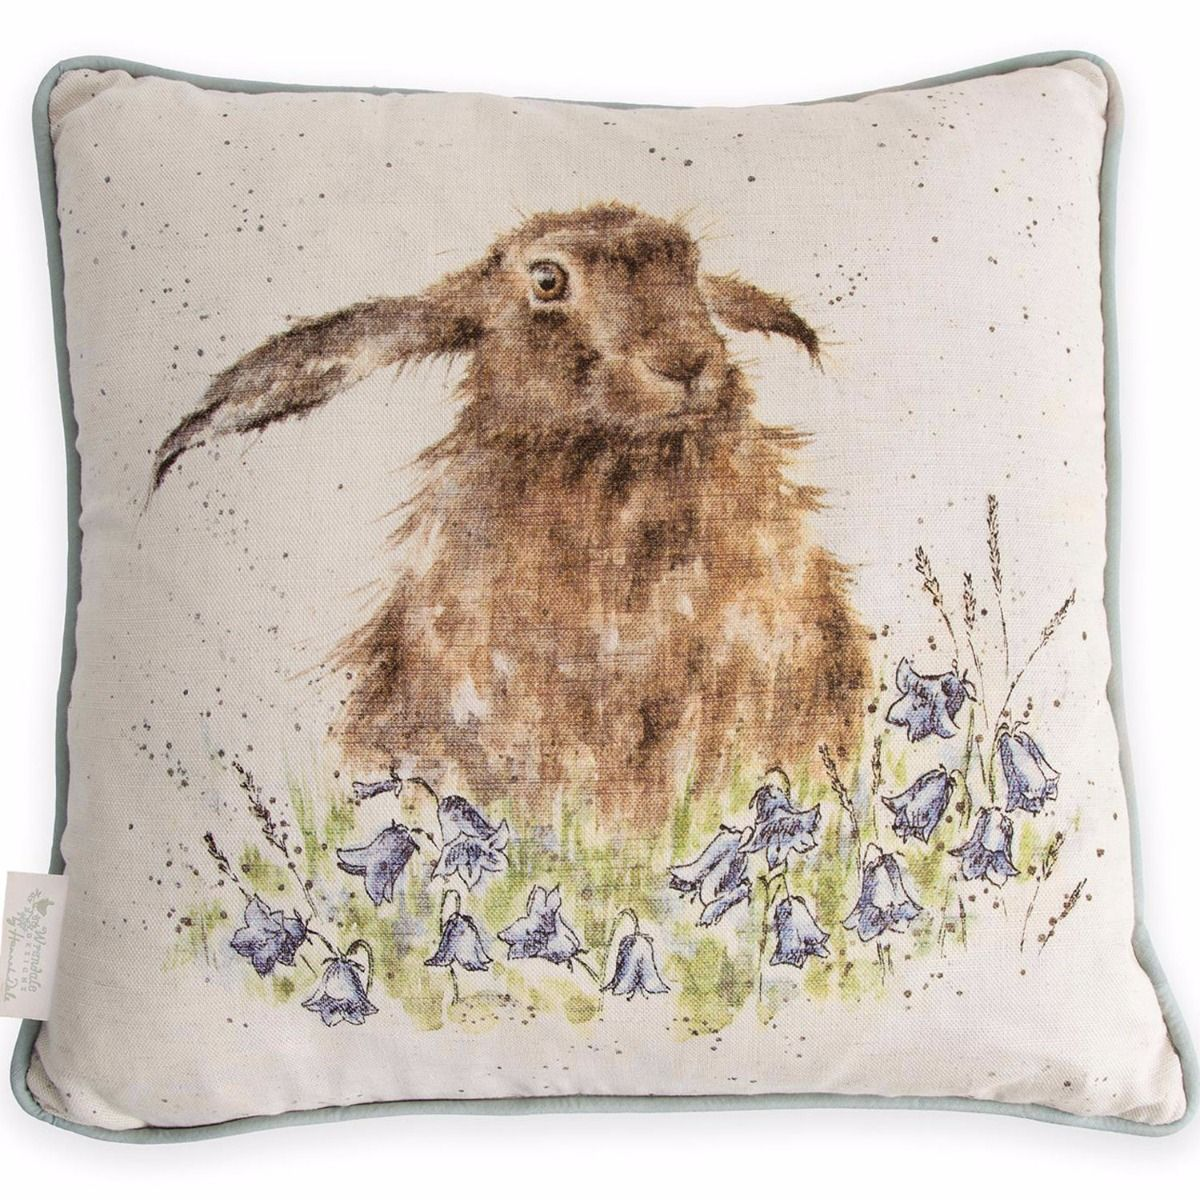 Our Bright Eyes Hare Cushion